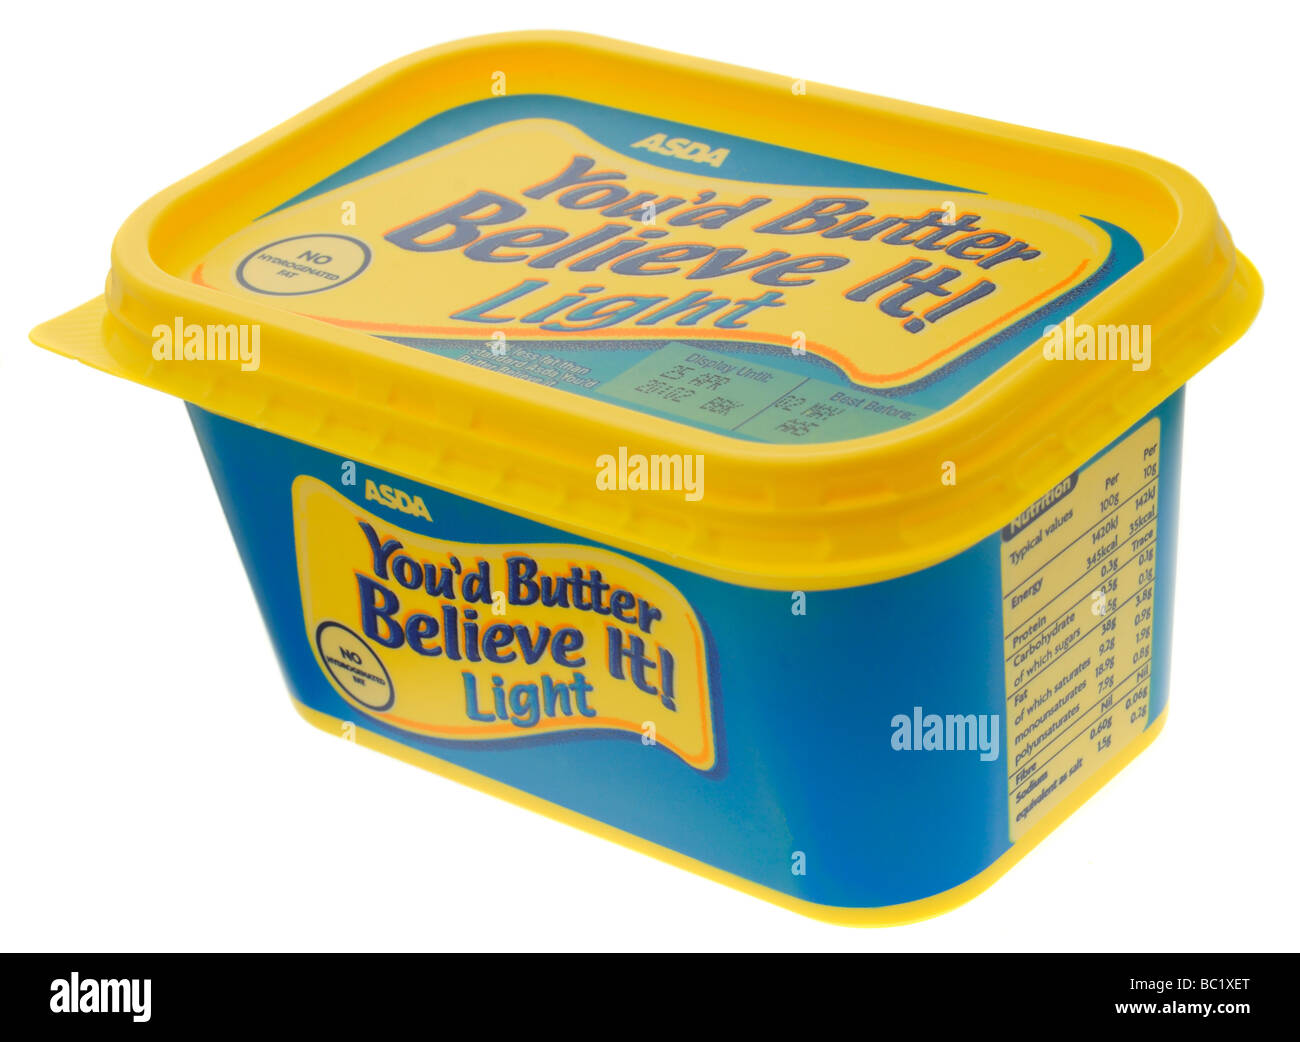 margarine tub essay View essay - is margarine or butter essay prompt from sc 110 at tub margarine is the overall is margarine or butter essay prompt - depalma 1 samantha.